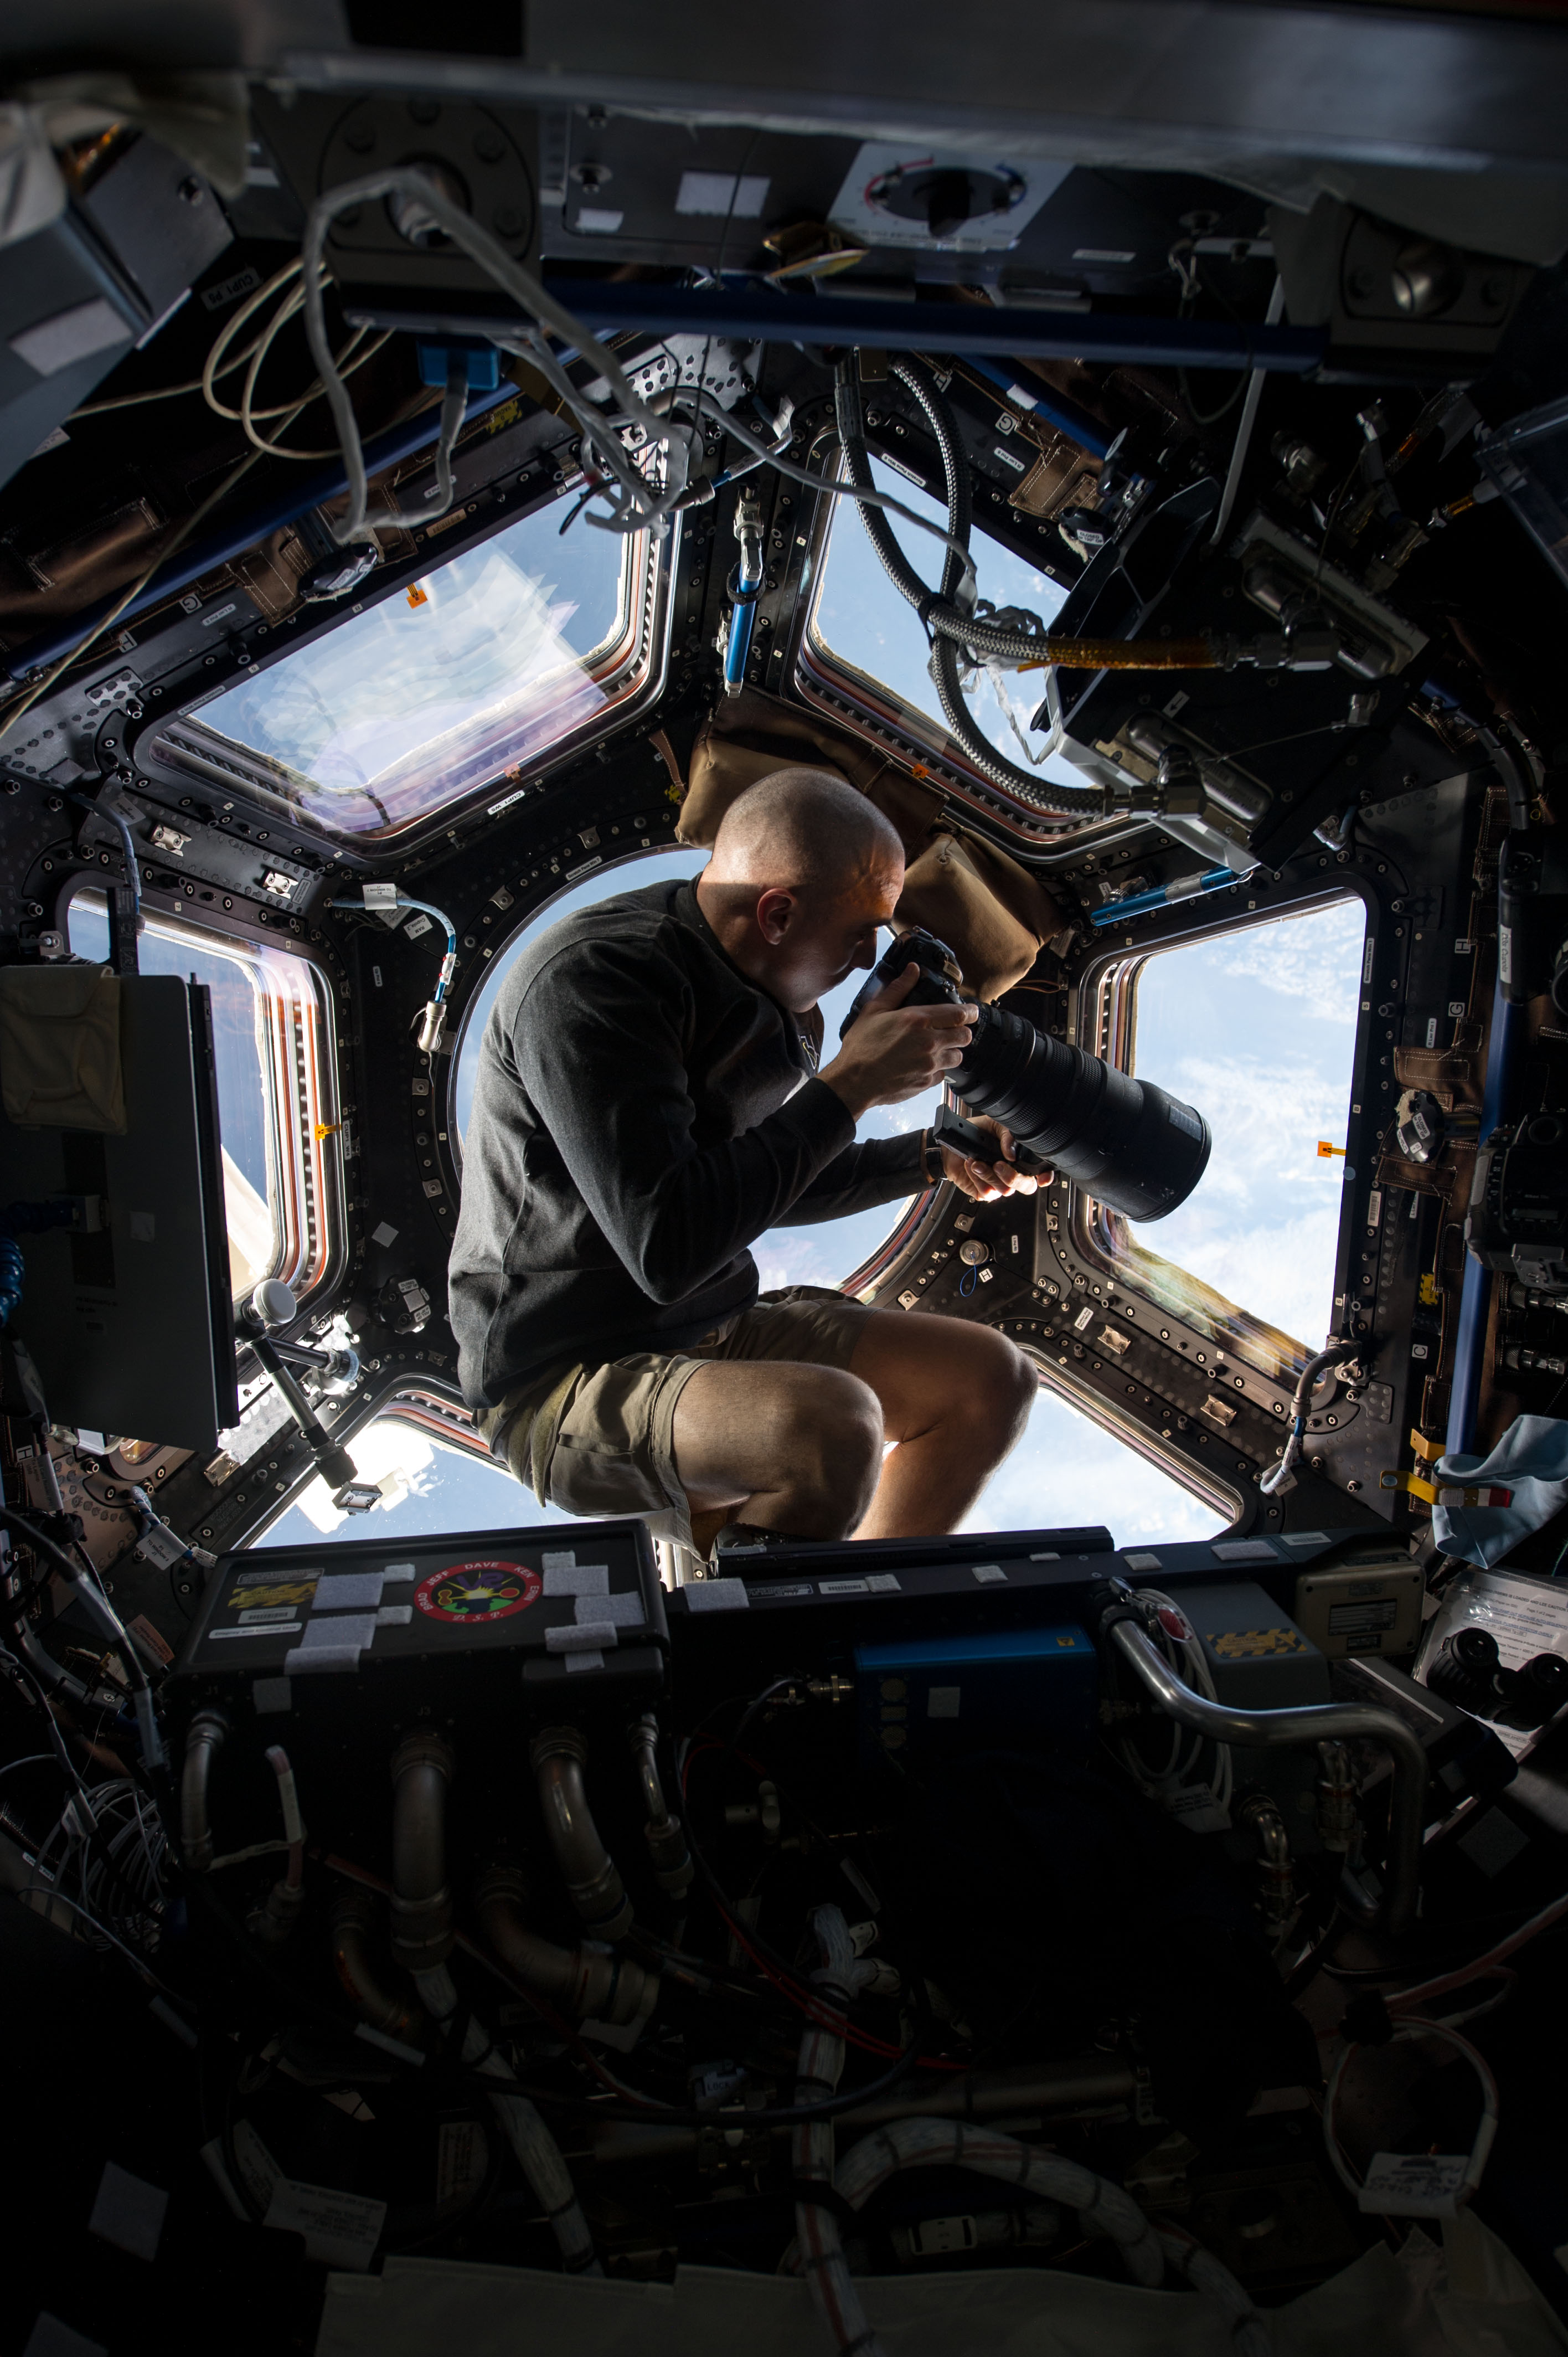 The_Ulitimage_Photo_Shoot_Location_-_Targeting_Earth_Photographs_From_Orbit.jpg